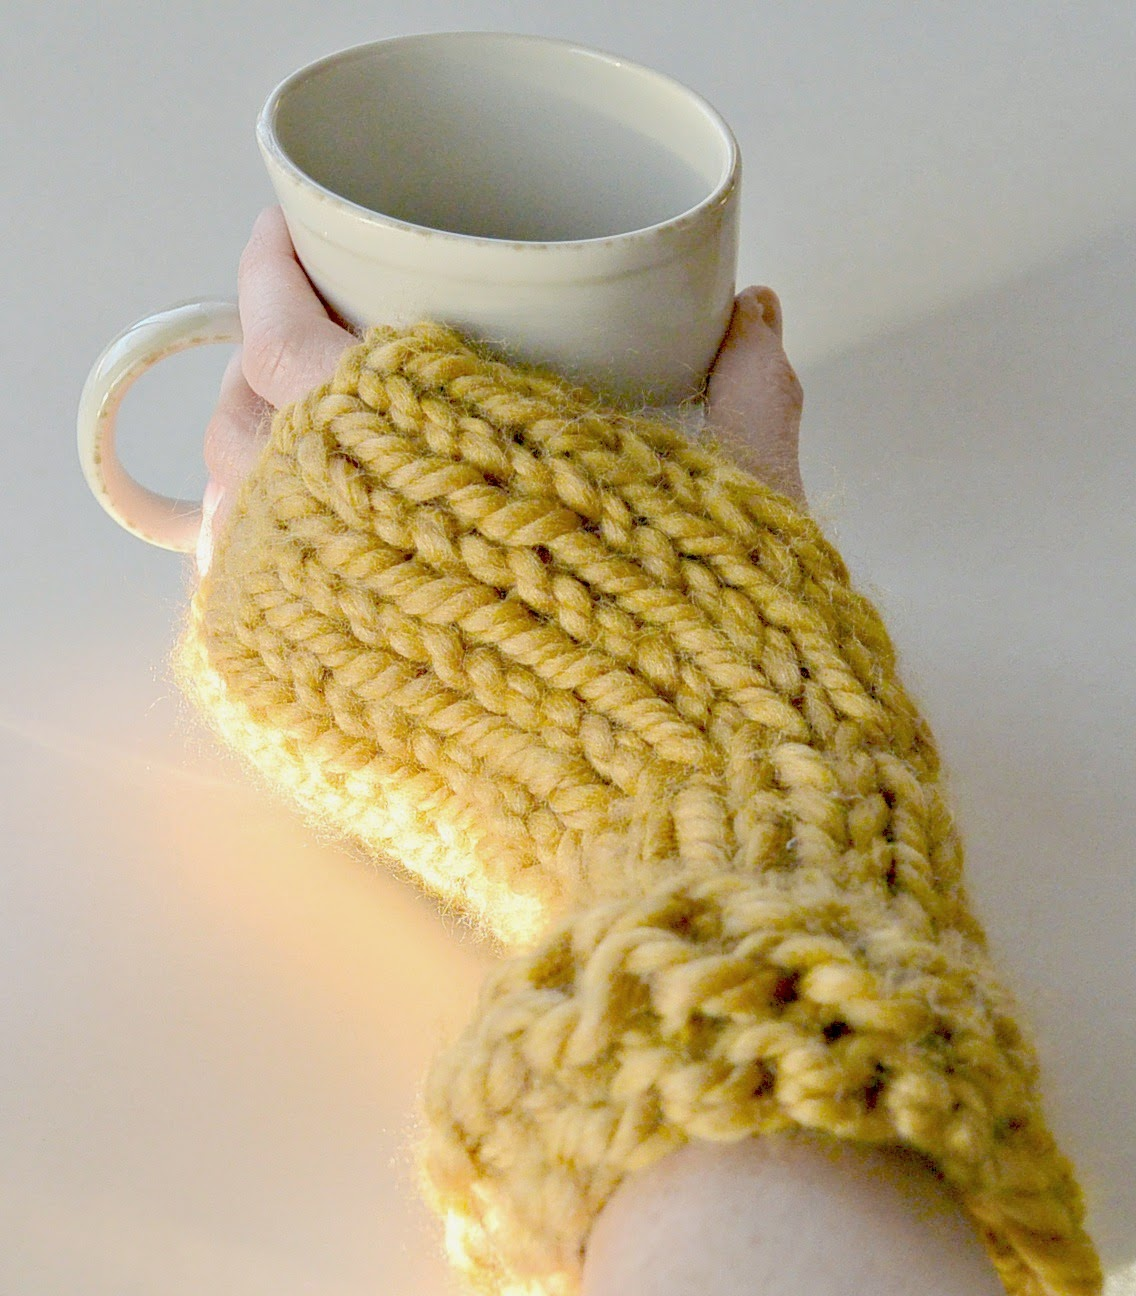 Knitting Patterns Galore - Straw Bed Wrist Warmers / Fingerless Gloves